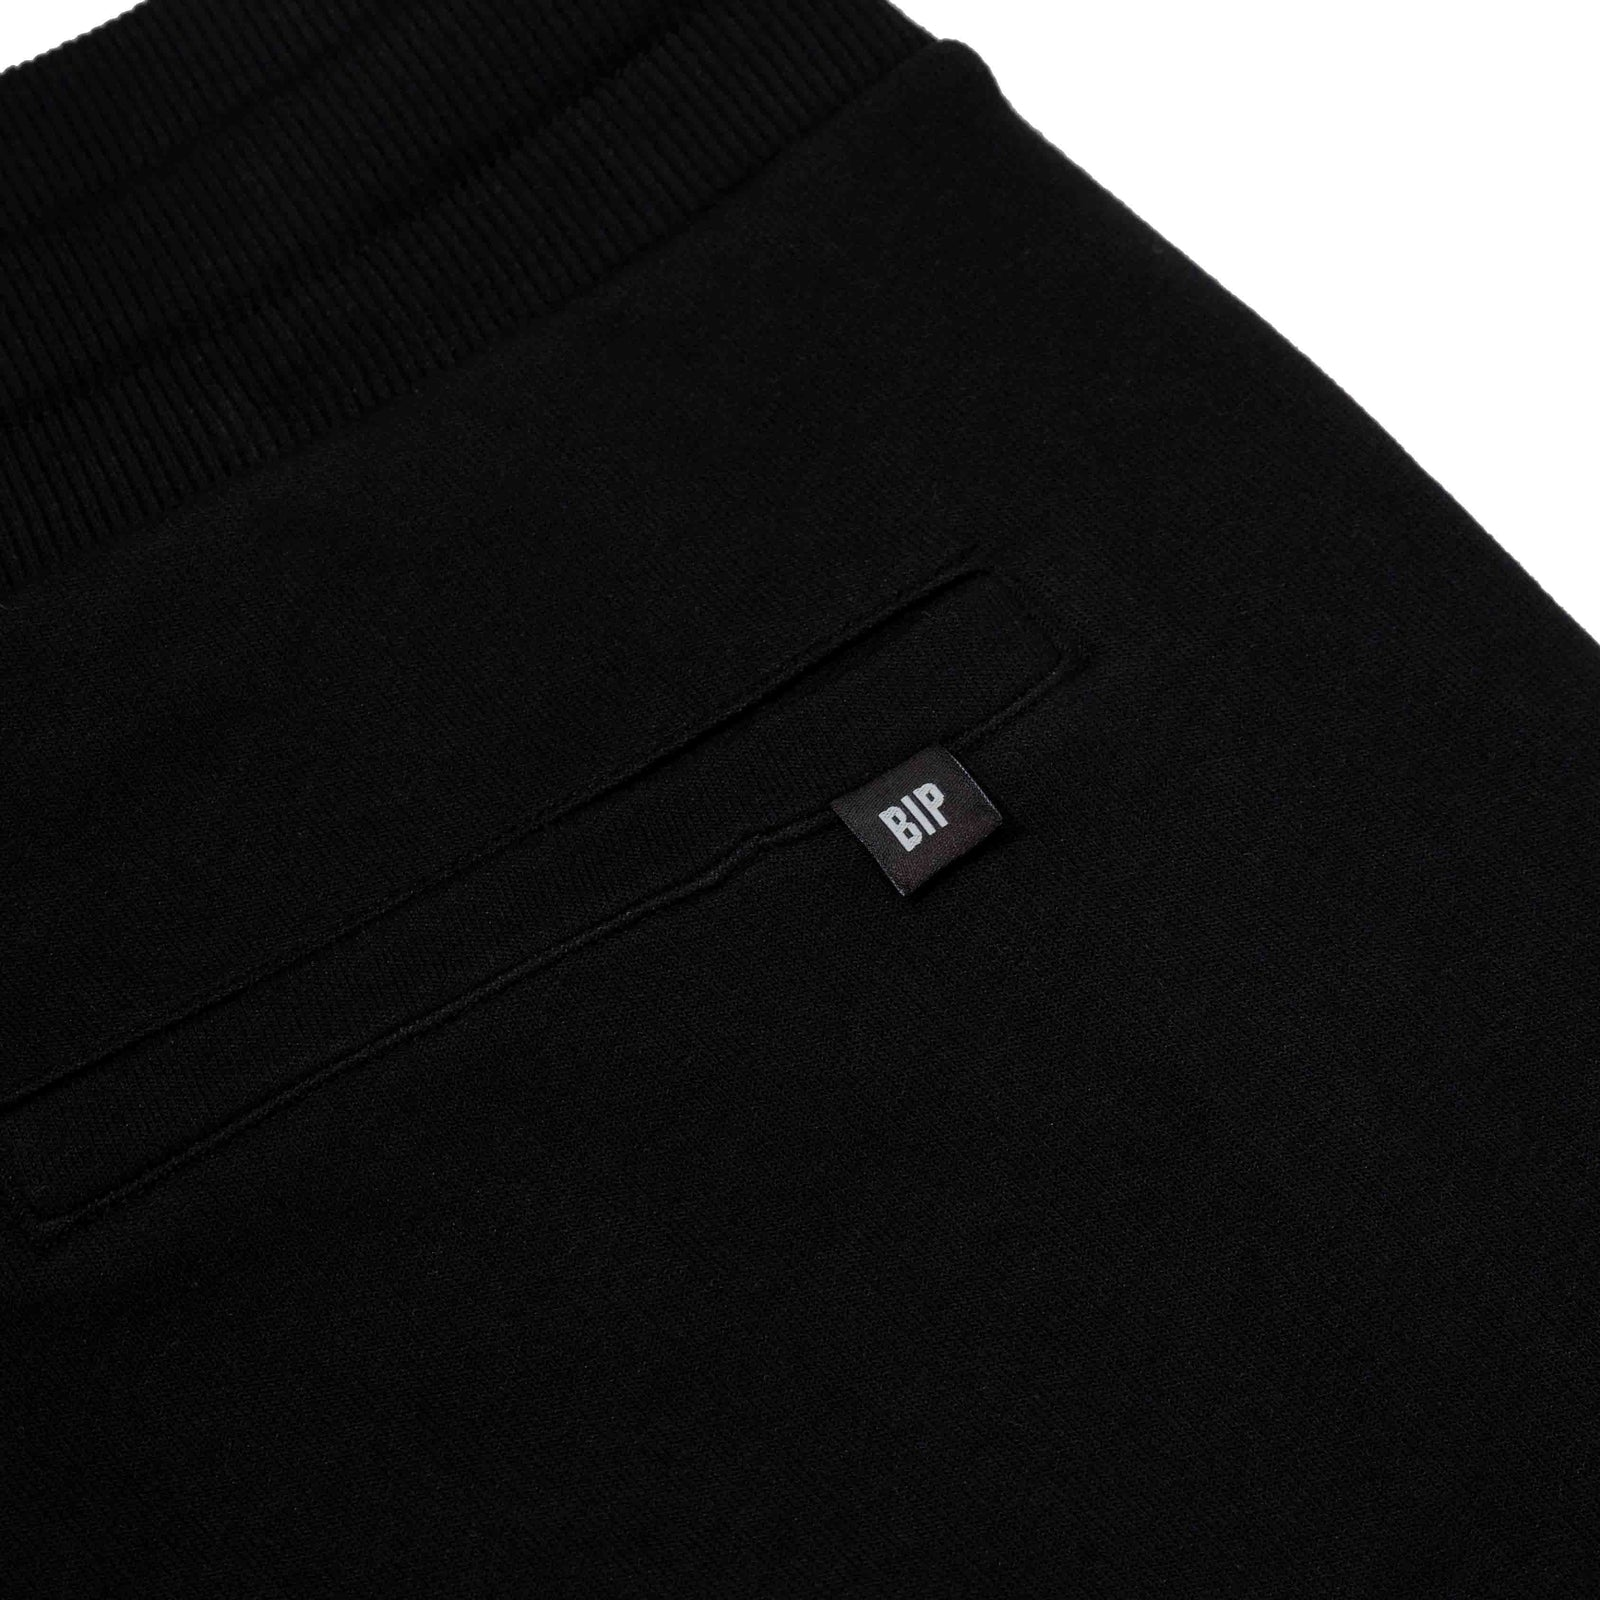 JustGym Sweatpant 2.0 - black